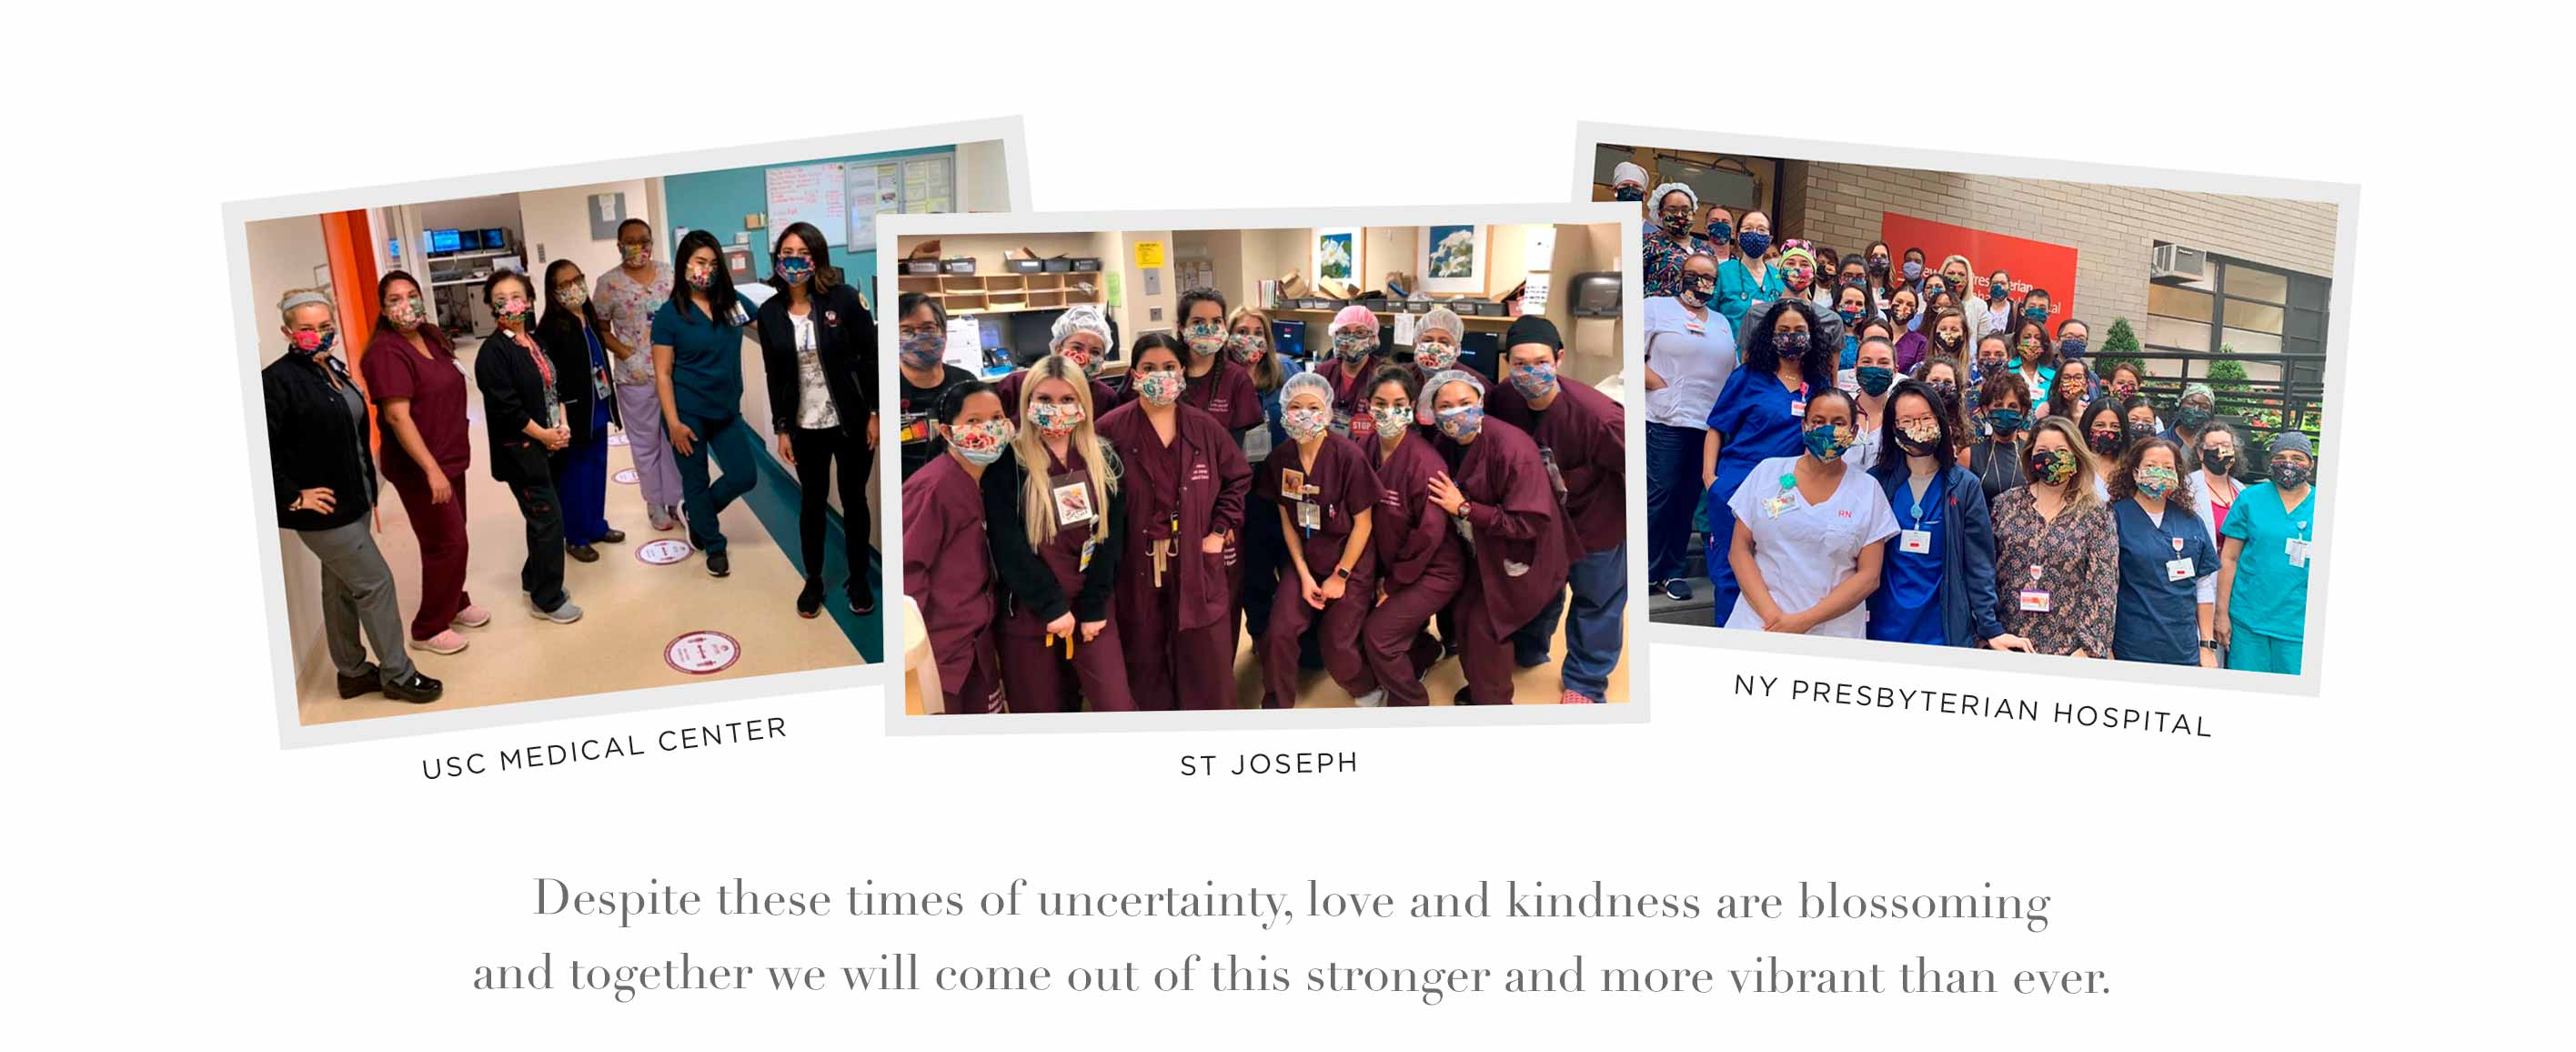 Johnny Was Masks at Usc Medical Center, St. Joseph, NY Presbyterian Hospital - Despite these times of uncertainty, love and kindness are blossoming and together we will come out of this stronger and more vibrant than ever.